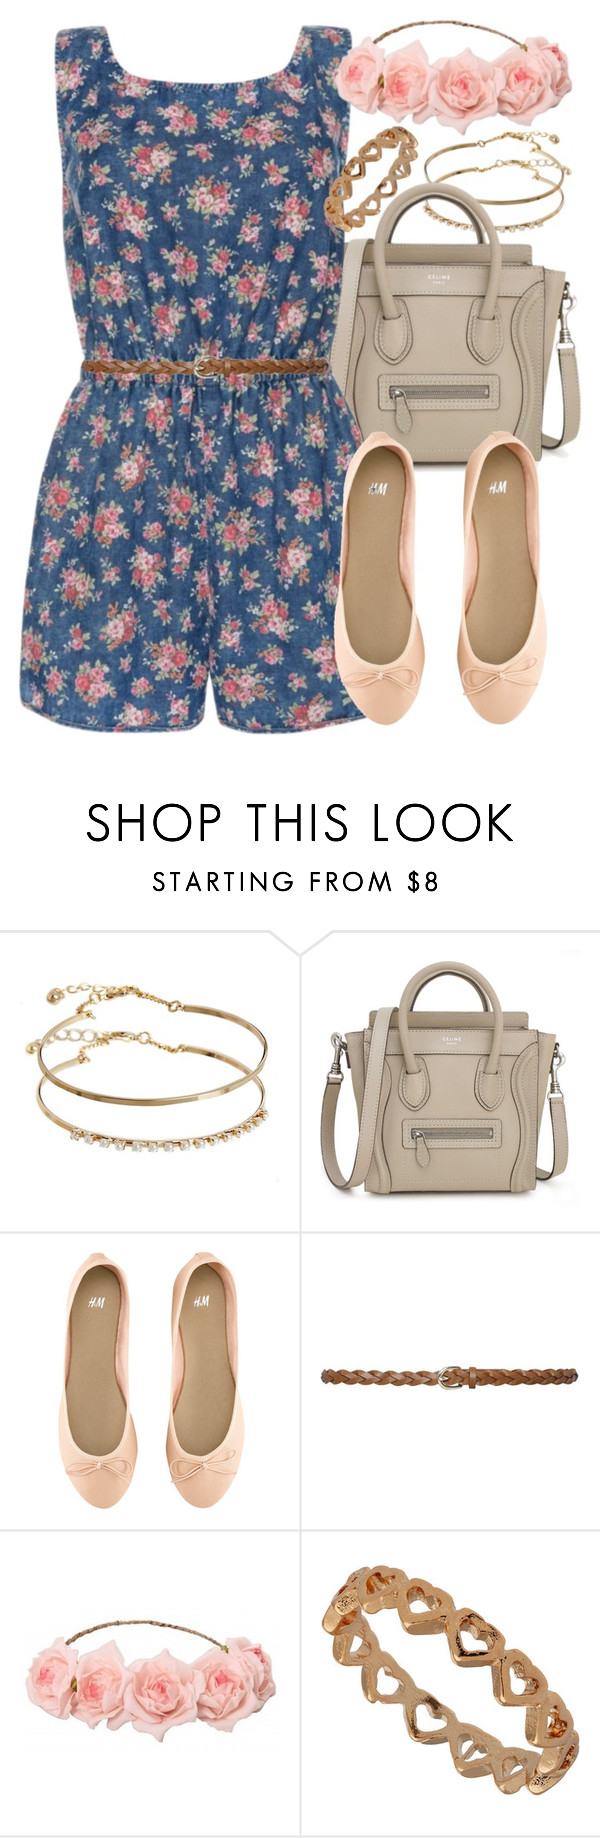 """""""Look #560"""" by foreverdreamt ❤ liked on Polyvore featuring moda, ASOS, H&M e M&Co"""